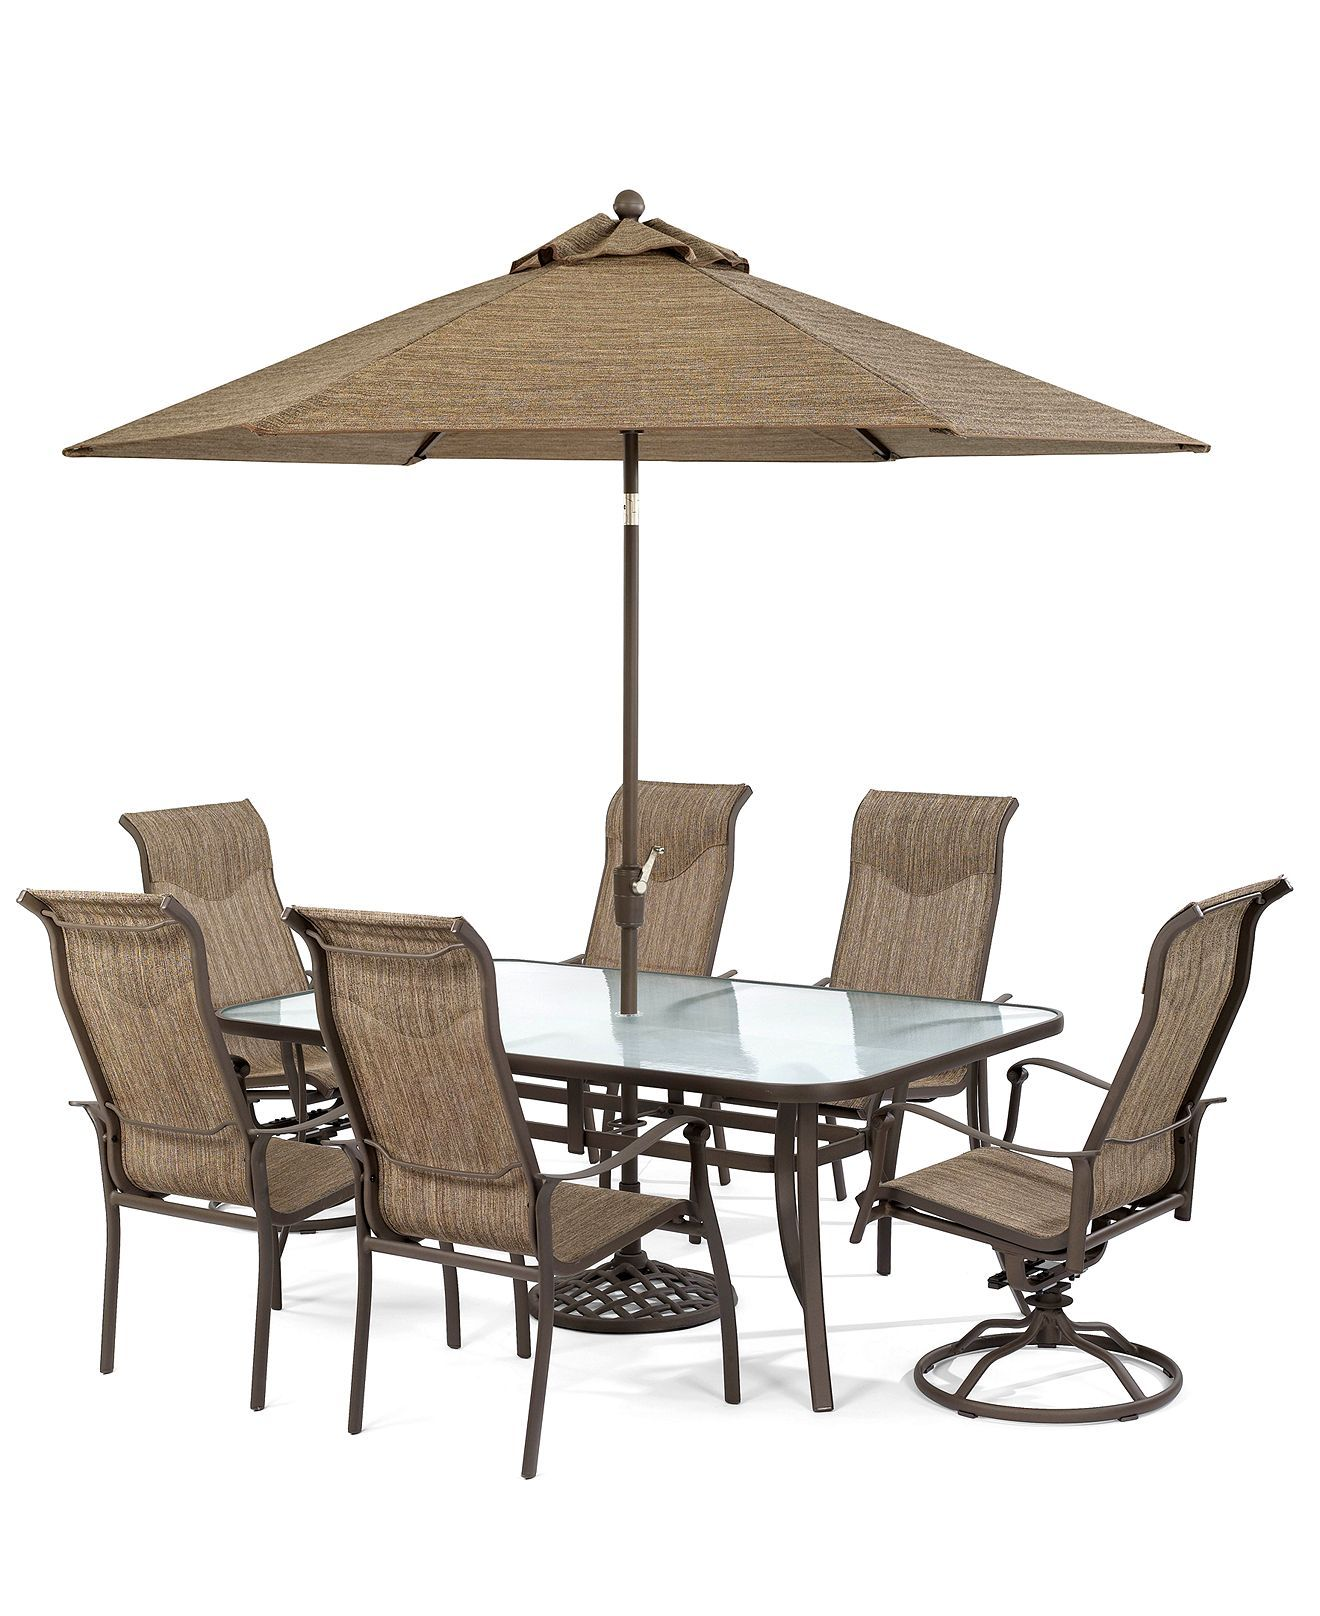 Oasis Outdoor Patio Furniture 7 Piece Set 72 x 42 Dining Table